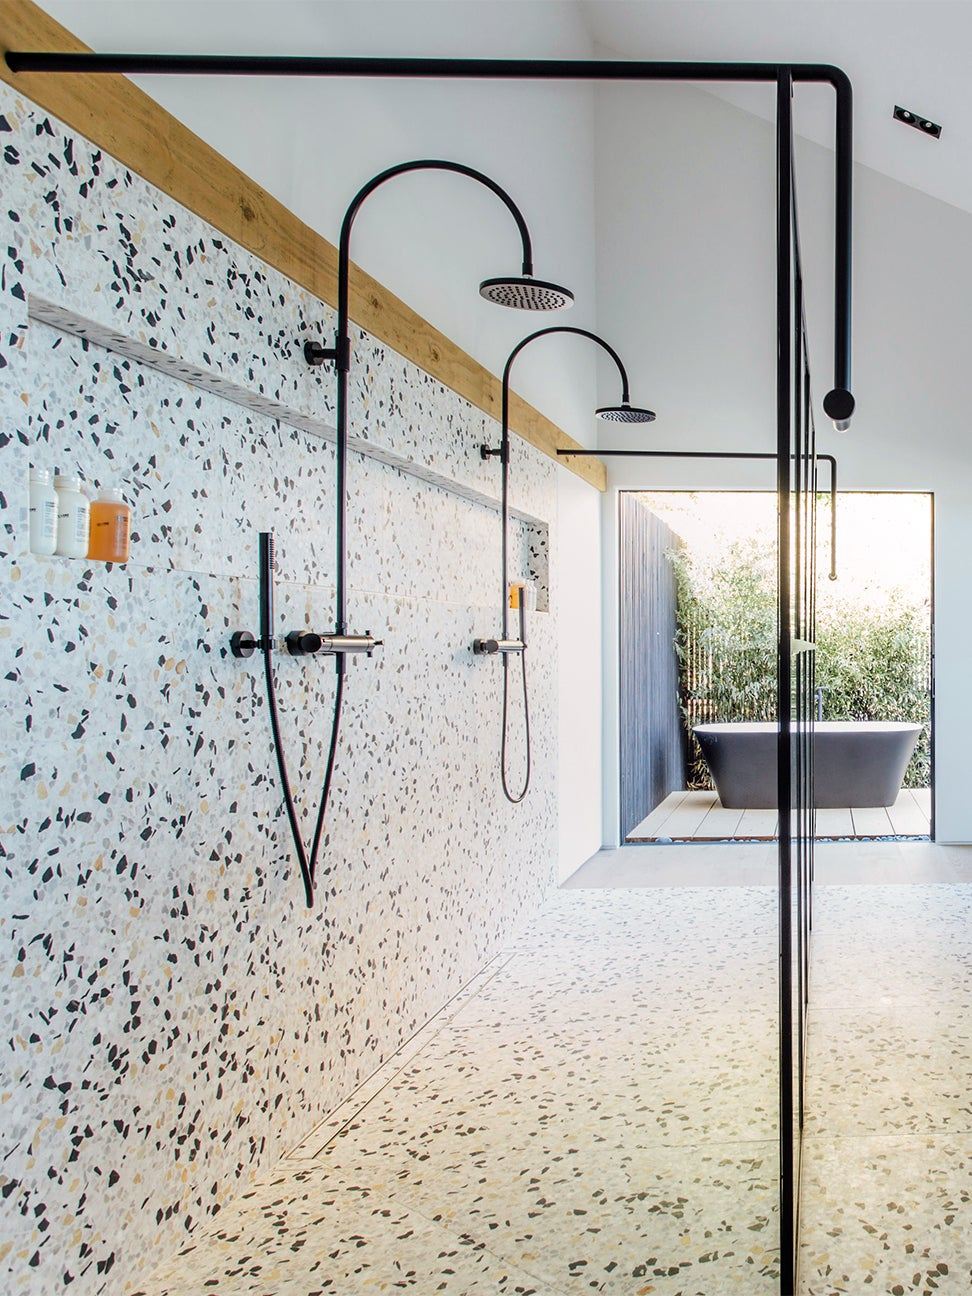 This Terrazzo Tile Bathroom By The Brown Studio Makes A Case